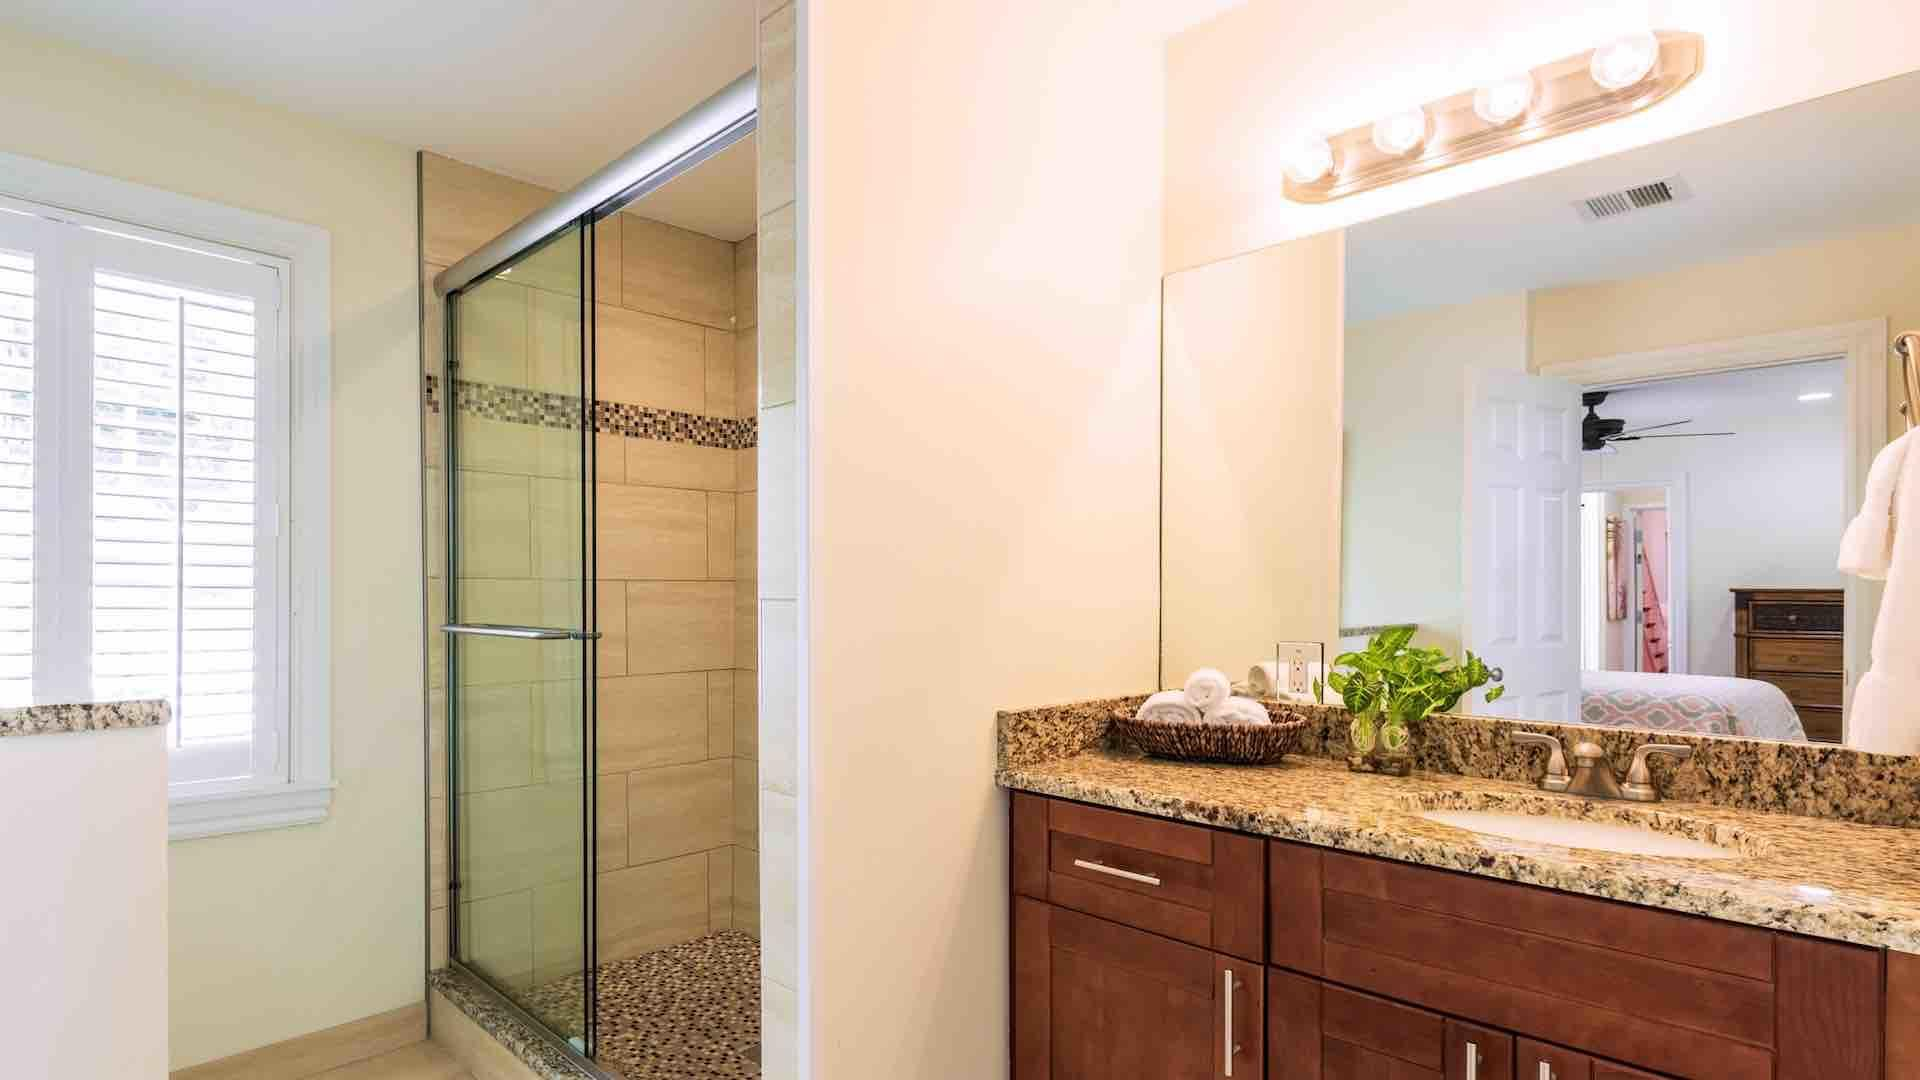 The downstairs master bathroom has a walk-in glass shower...